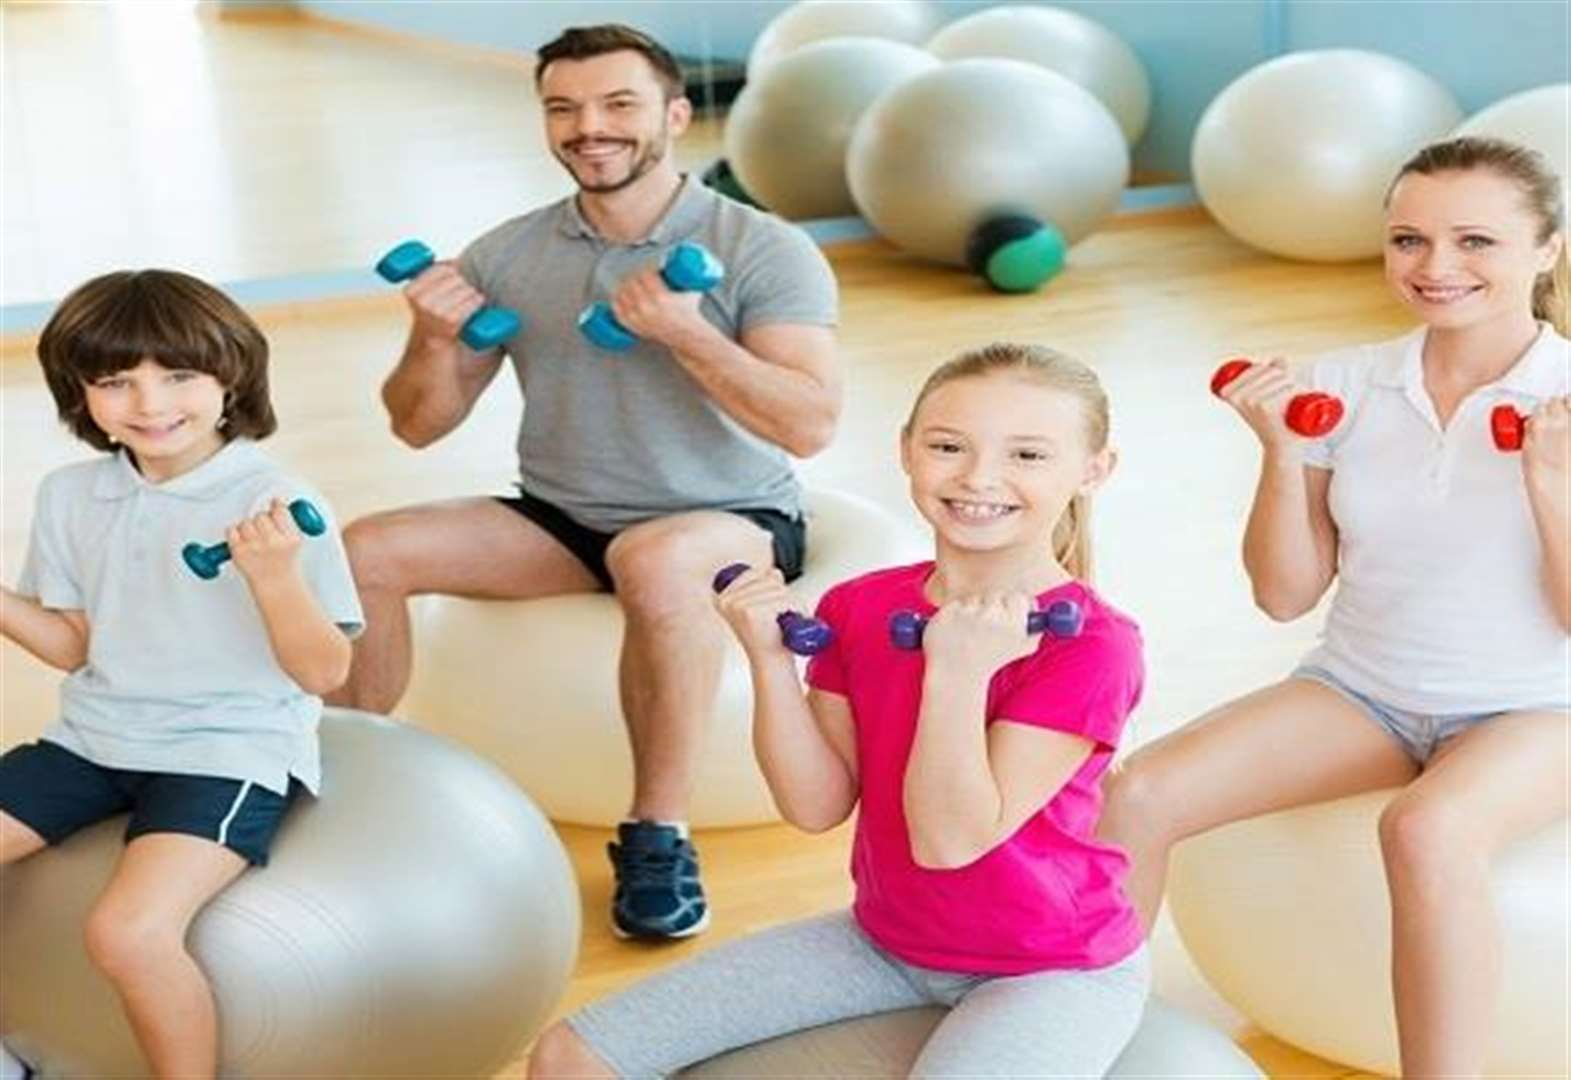 New sessions to help families get active together in Fenland